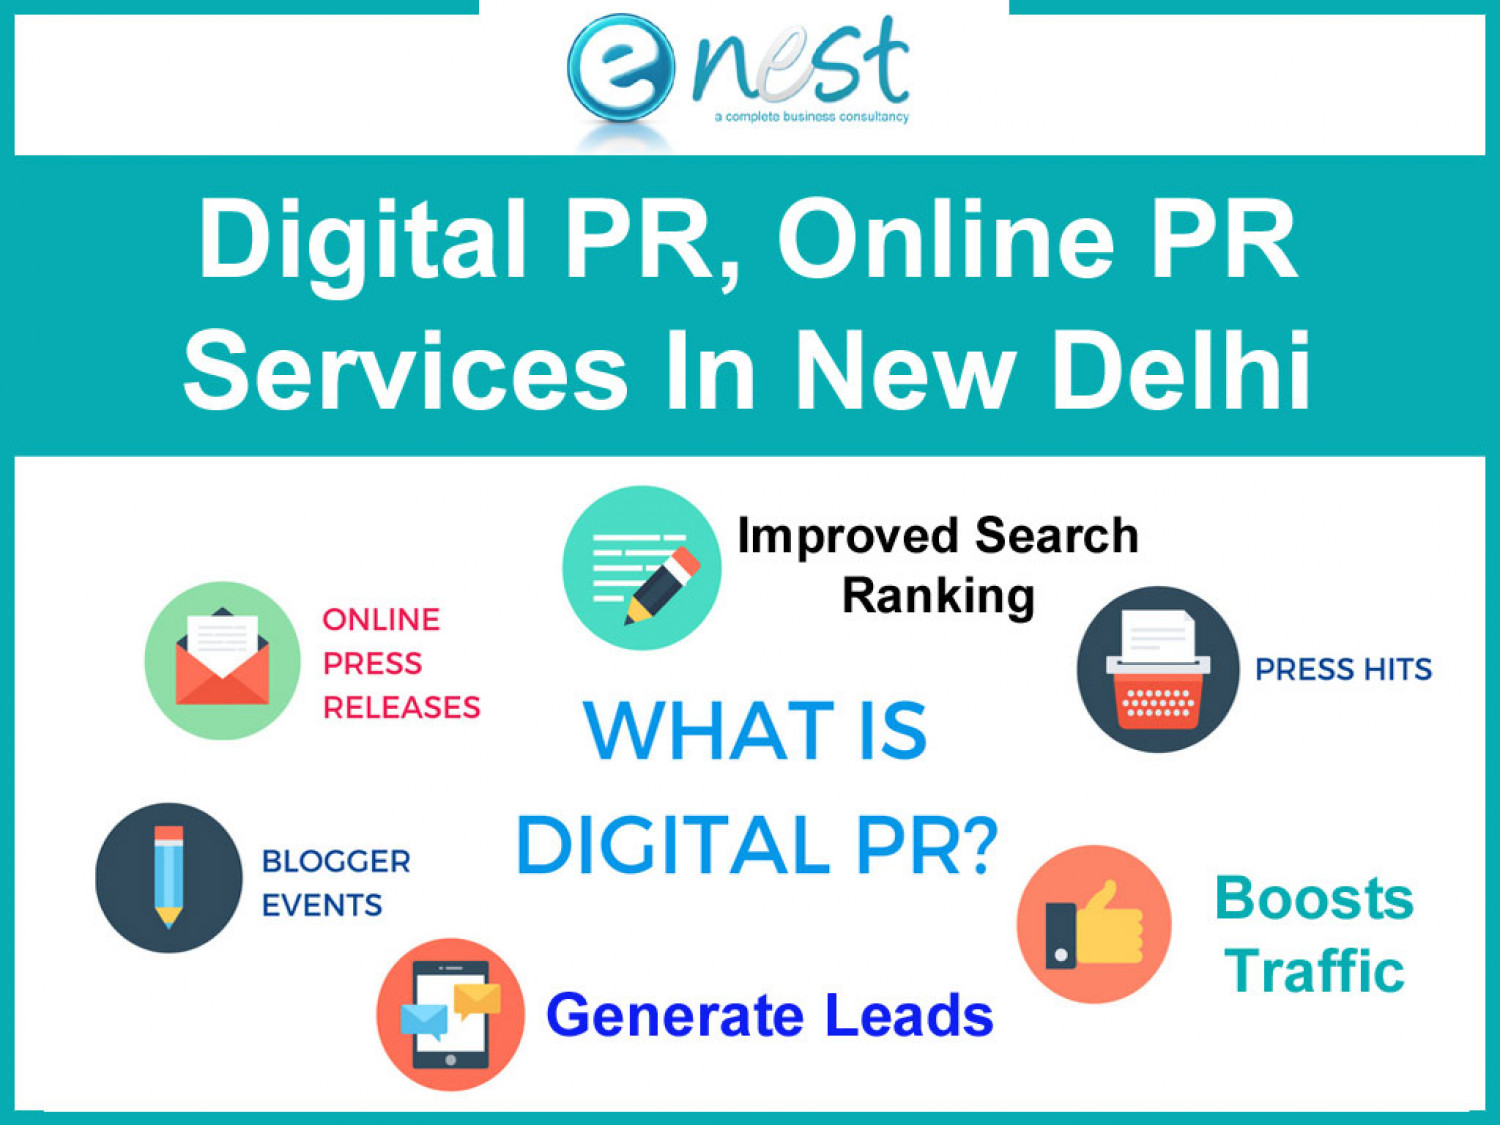 Digital PR, Online PR Services in Delhi, India Infographic